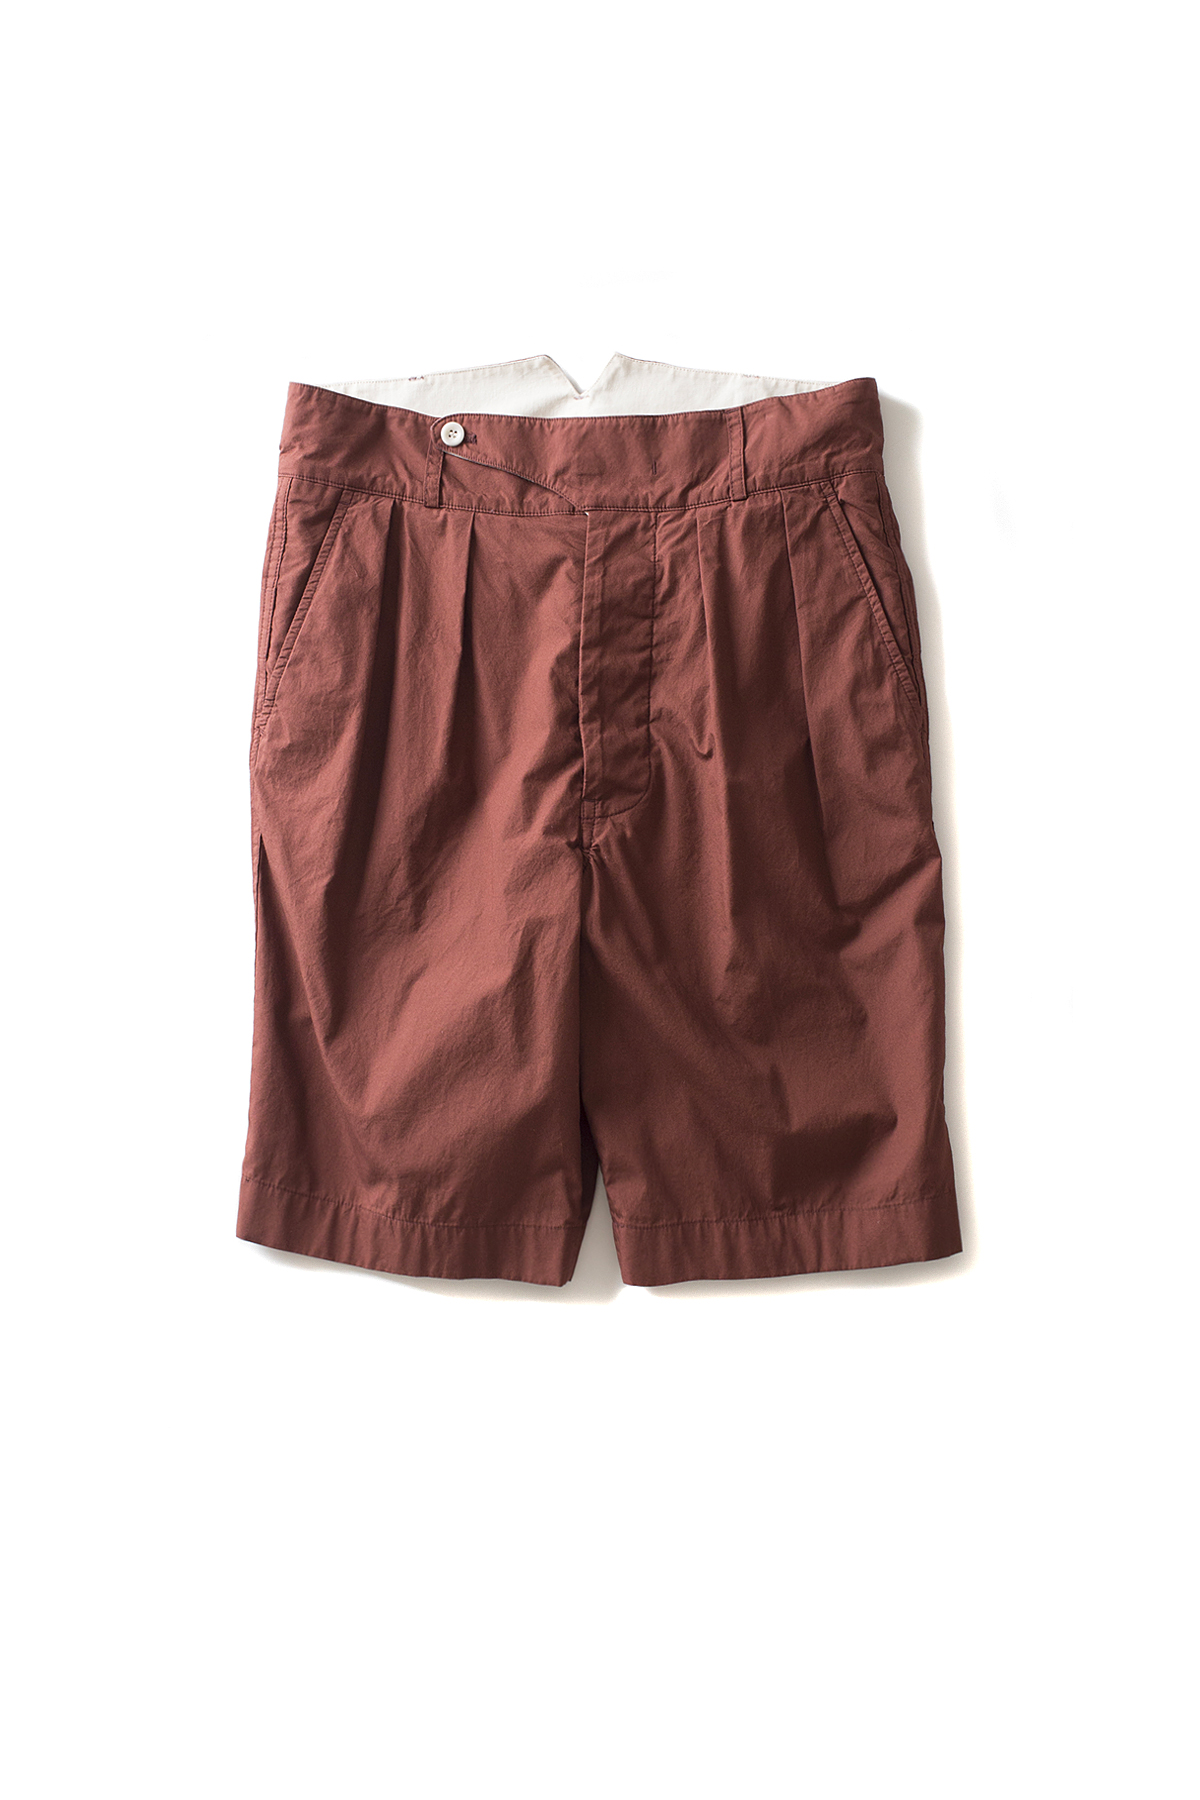 Document : Fine Cotton Tucked Shorts (Brown)